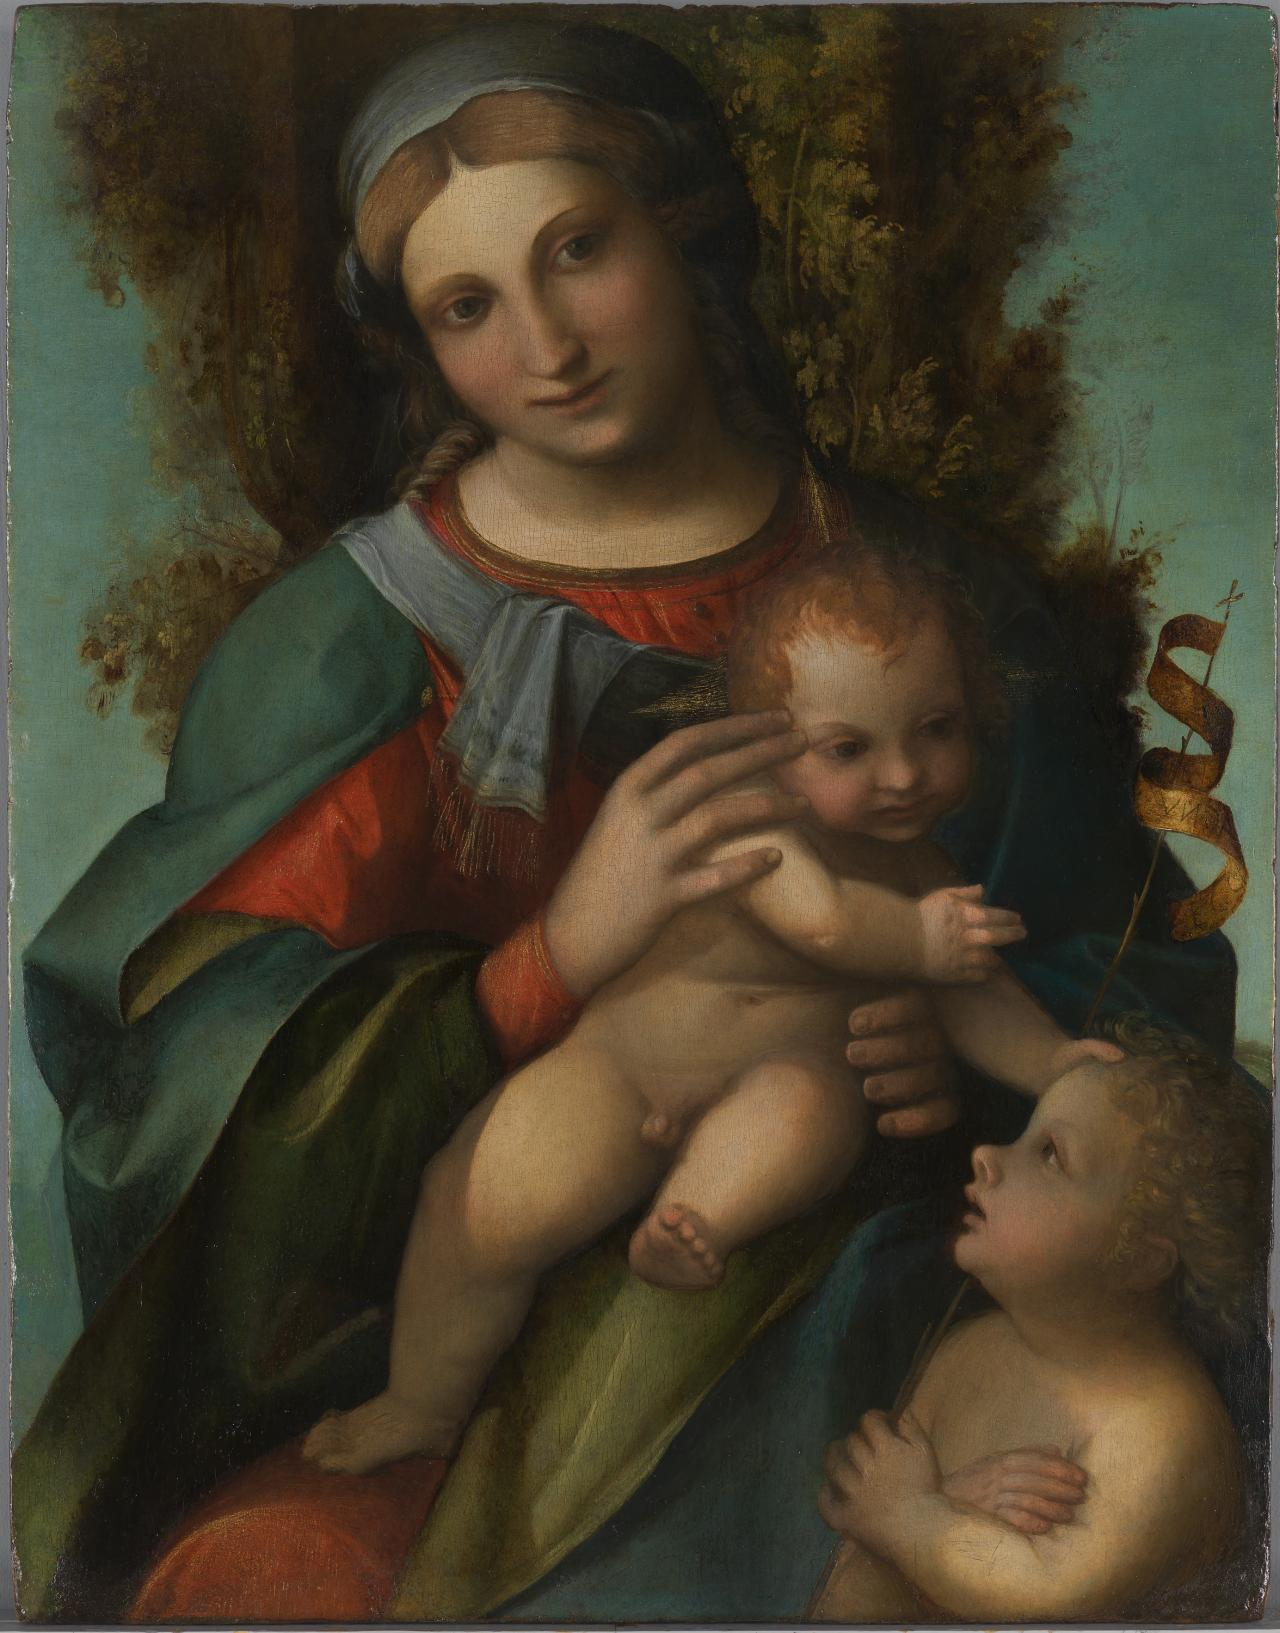 Madonna and Child with infant Saint John the Baptist